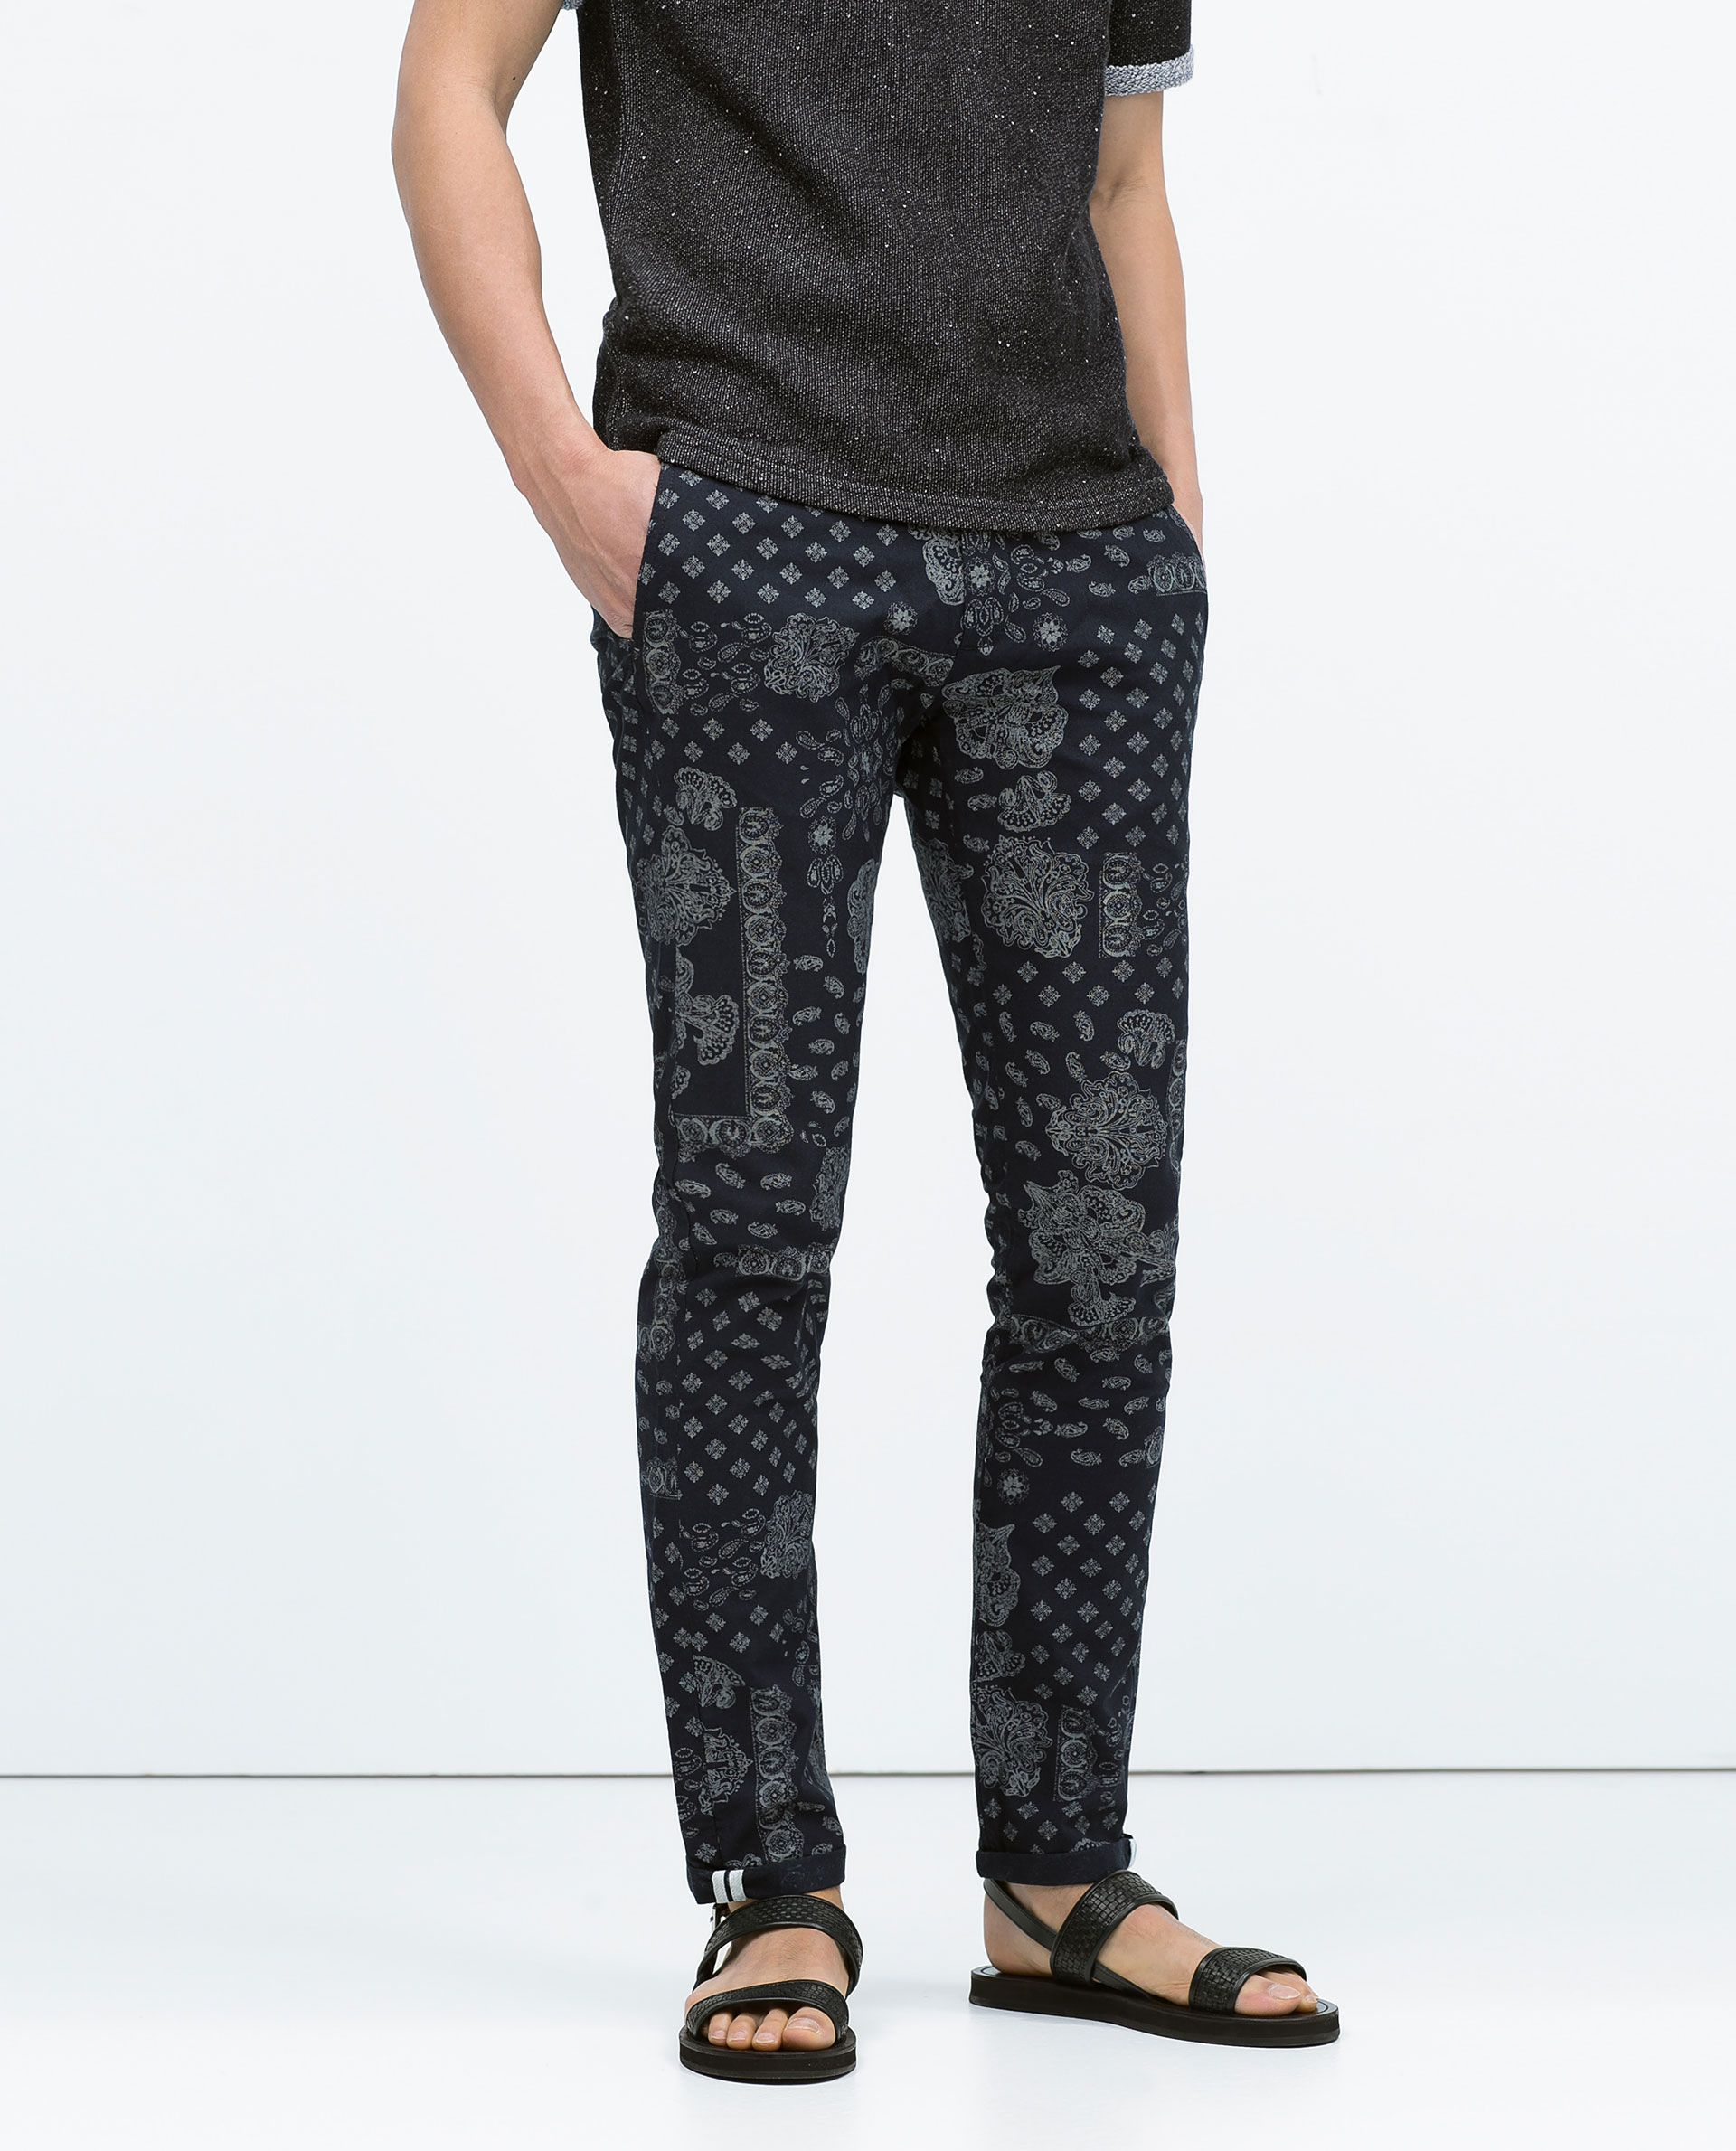 37e5c04c Zara PAISLEY PRINT TROUSERS | men's style in 2019 | Printed trousers ...